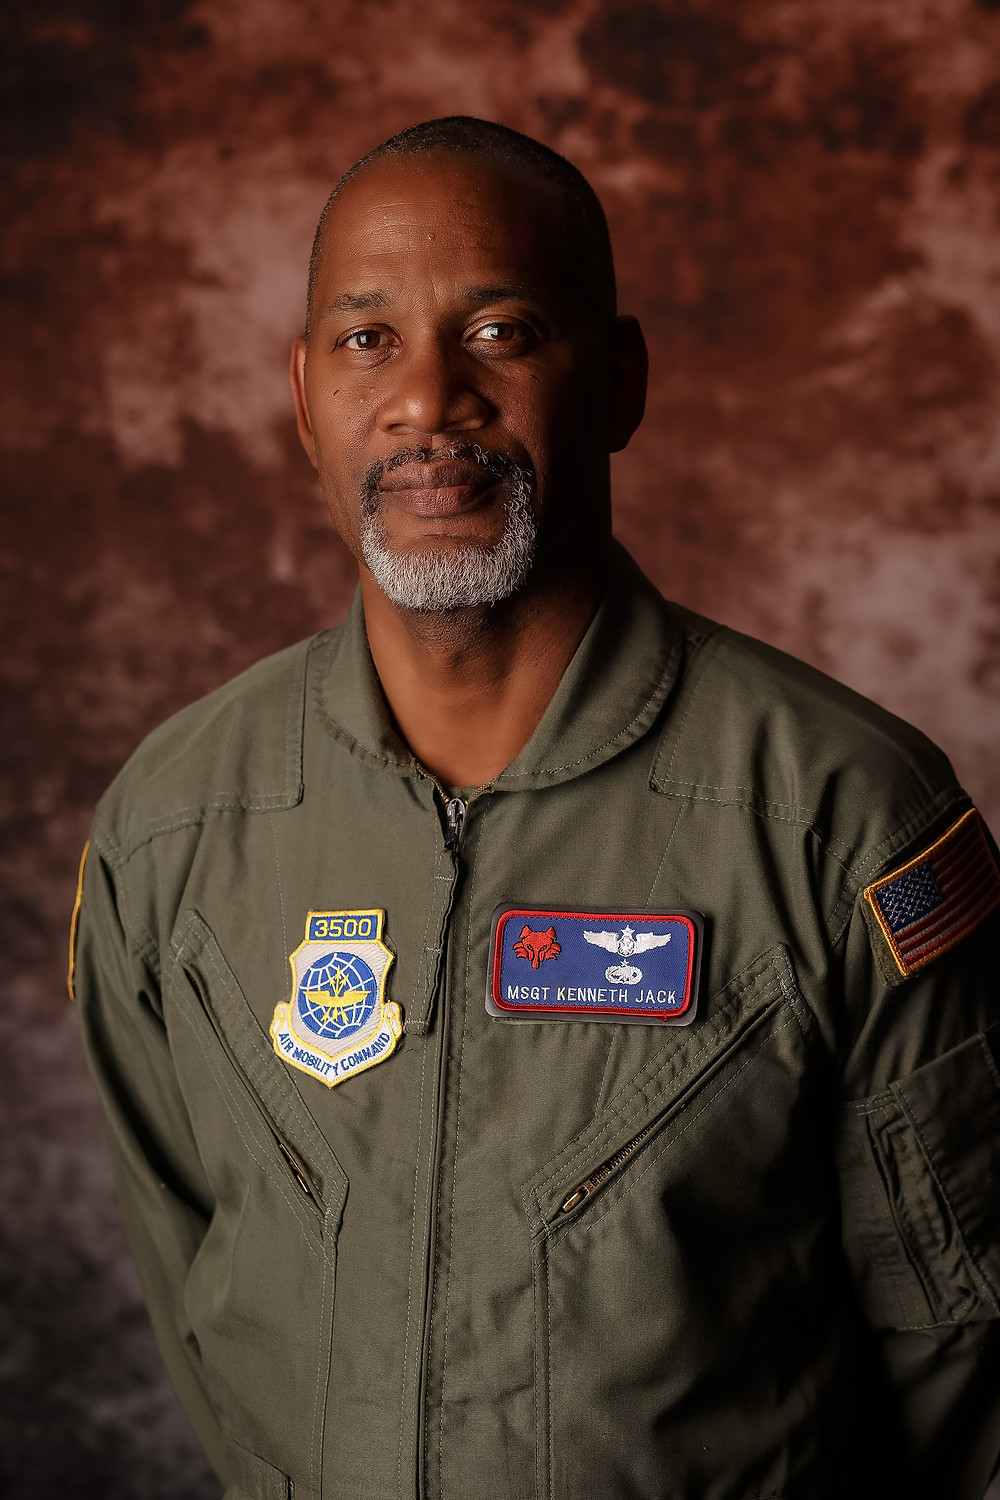 Portrait of Master Sergeant K Jack of the United States Air Force